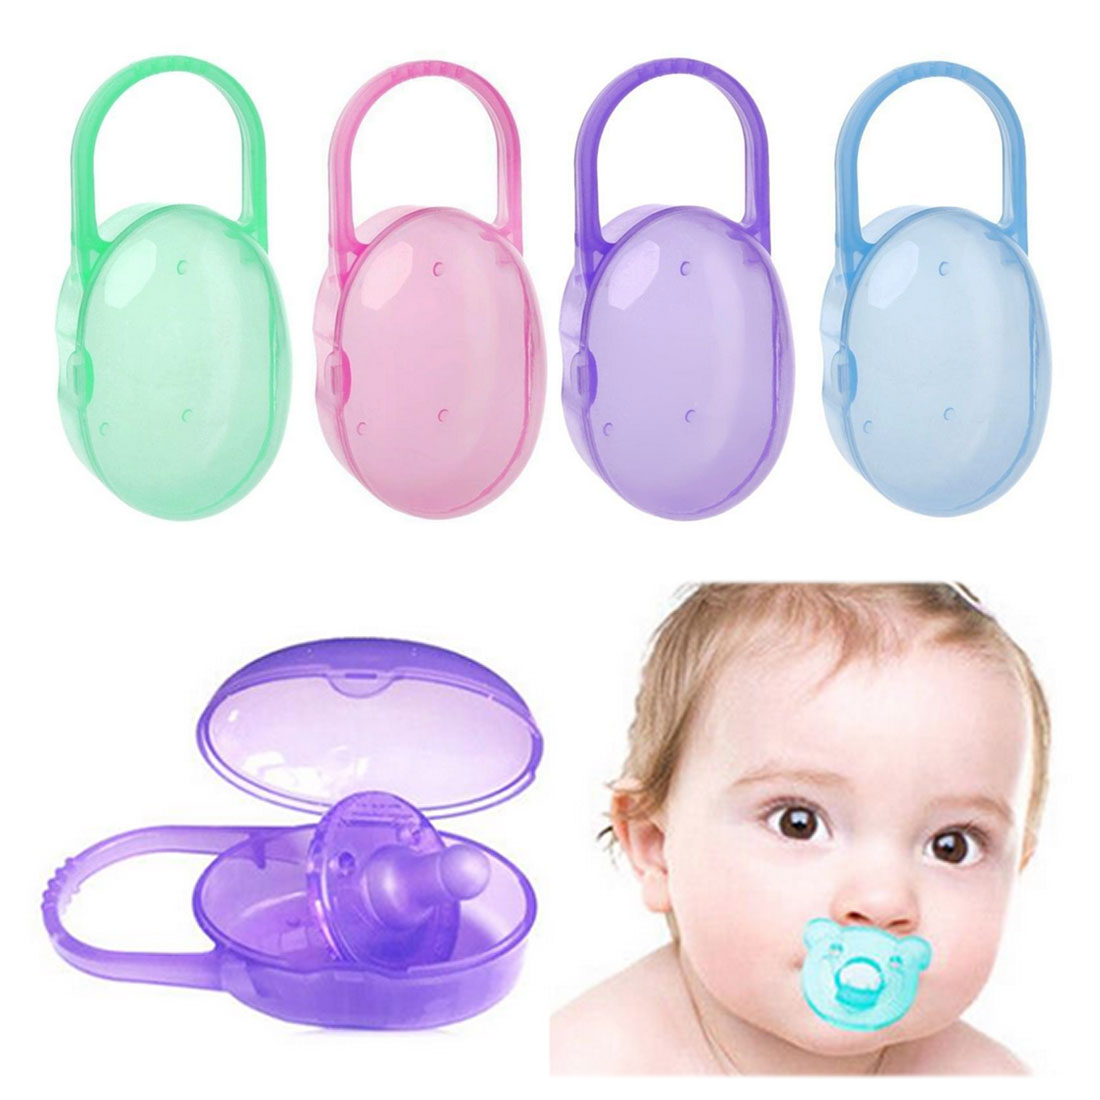 Solid Portable Baby Infant Kids Pacifier Nipple Cradle Case Holder Travel Storage Box Soother Safe Box 1pc